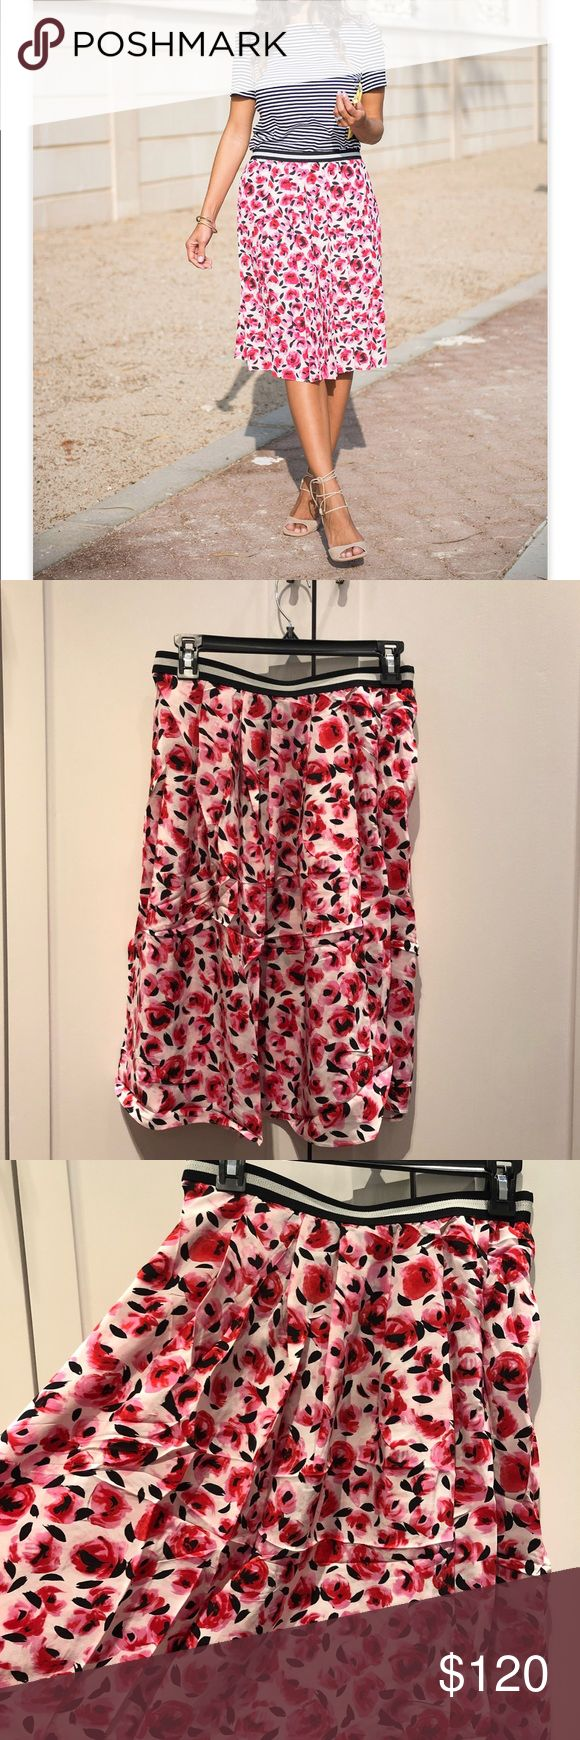 Kate Spade Rose stamp flare skirt Size 6 ( other sizes will be available upon request) elastic band 100% silk. Brand new without tags! kate spade Skirts Midi